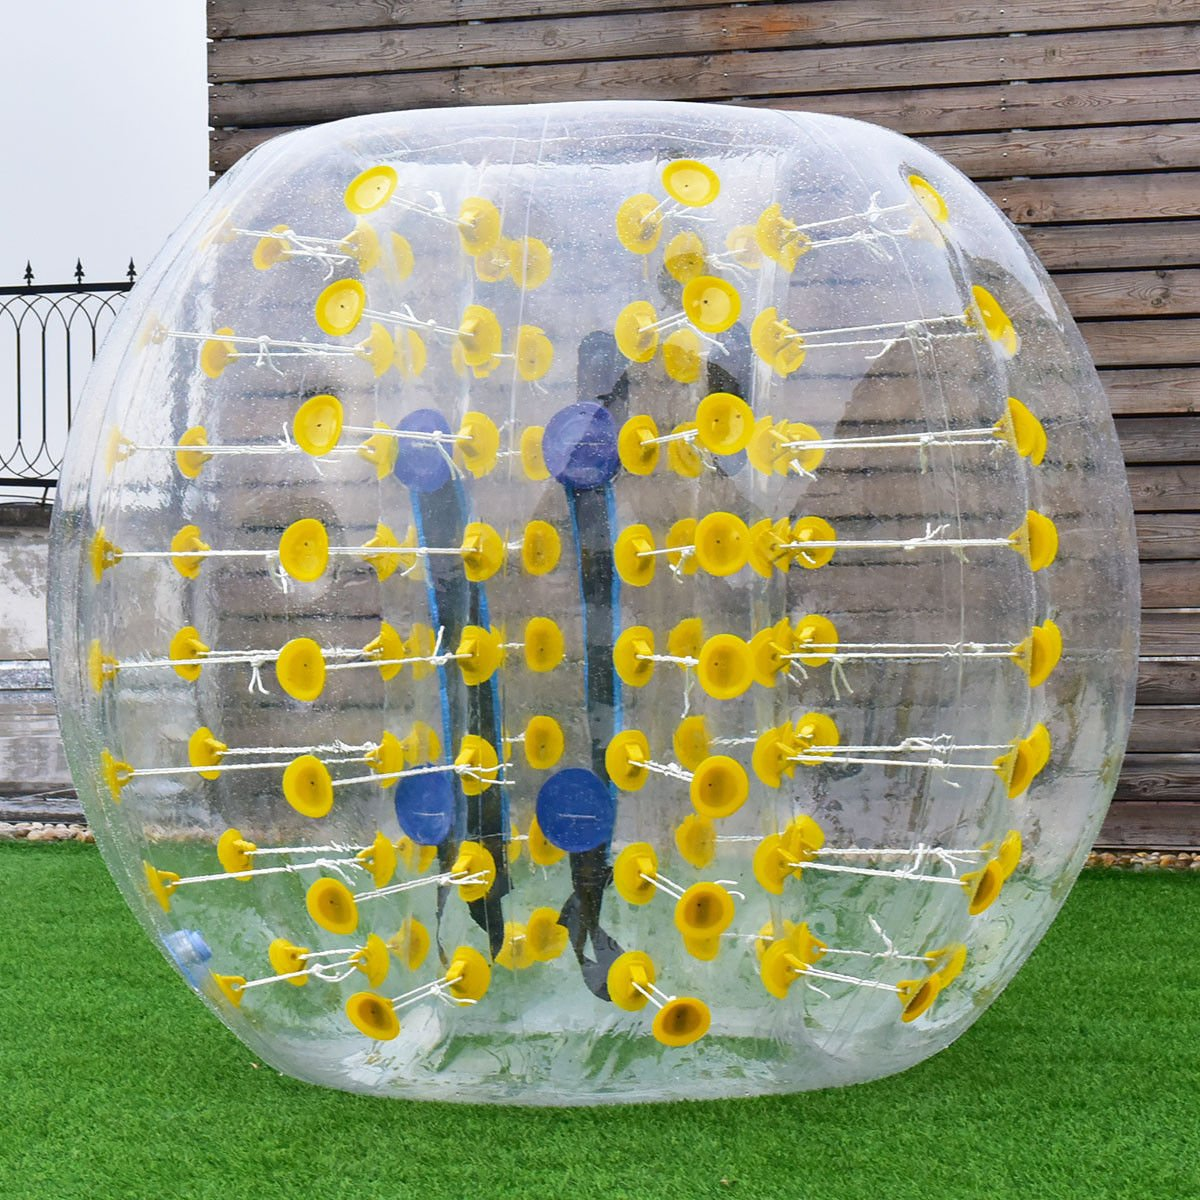 Costzon Bubble Soccer Ball, Dia 5' (1.5m) Human Hamster Ball, Inflatable Bumper Ball for Kids and Adults (Yellow Dot)